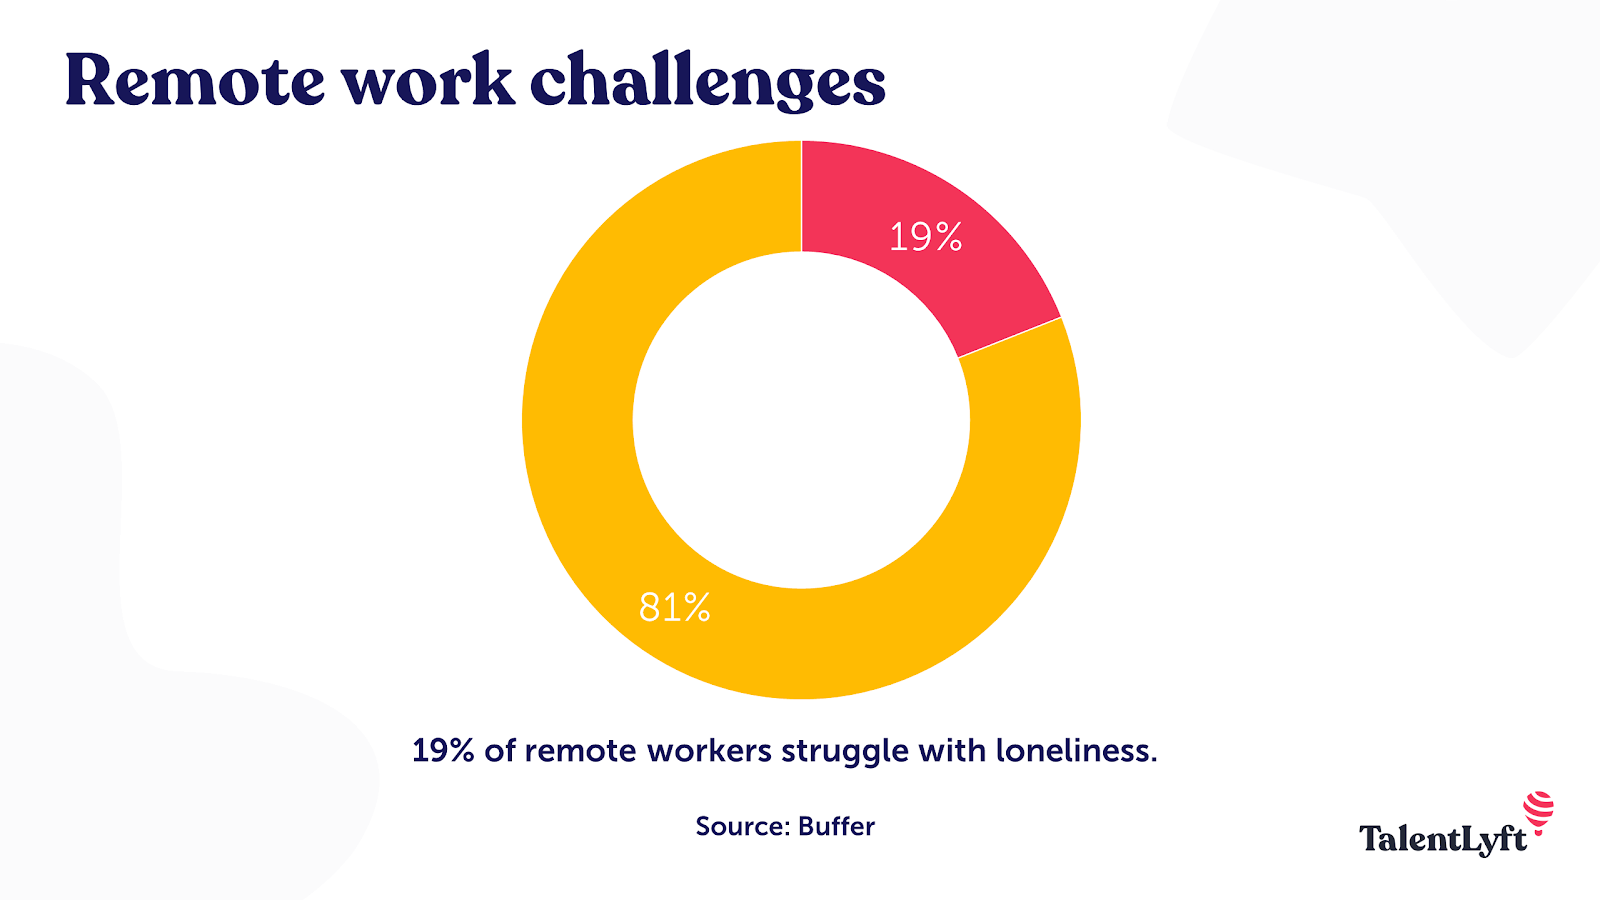 Remote work challenges